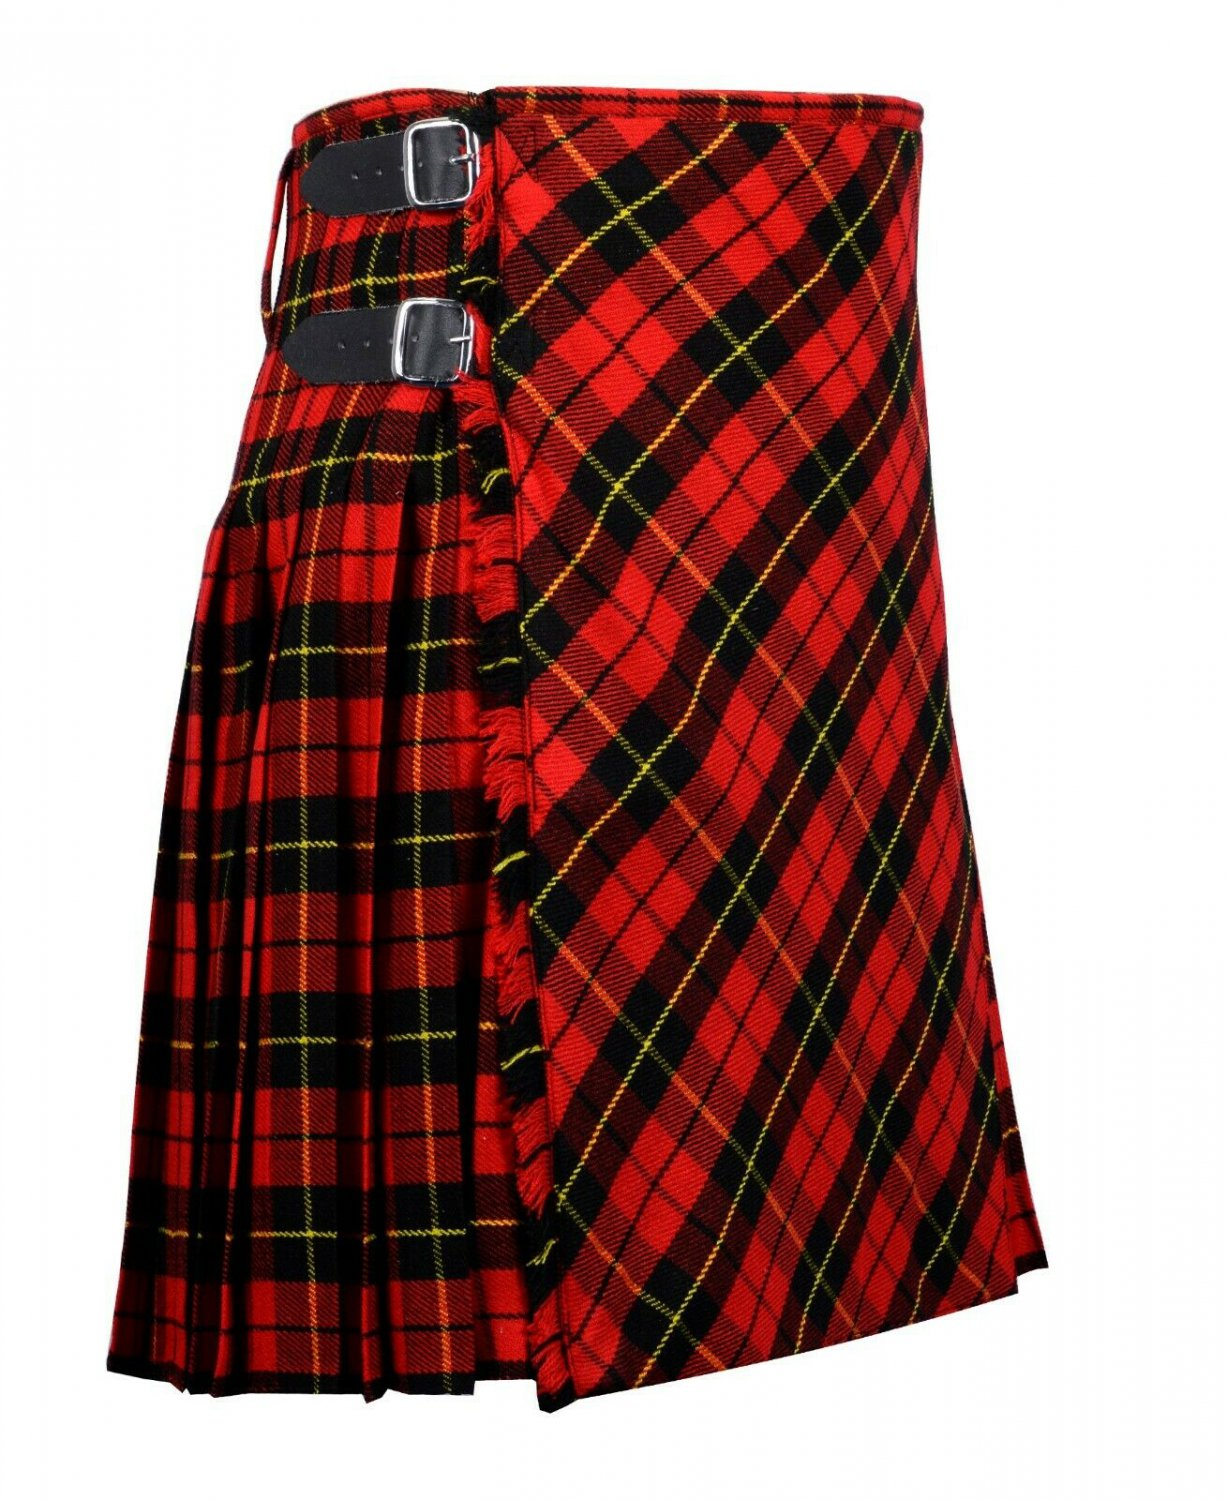 36 inches waist Bias Apron Traditional 5 Yard Scottish Kilt for Men - Wallace Tartan